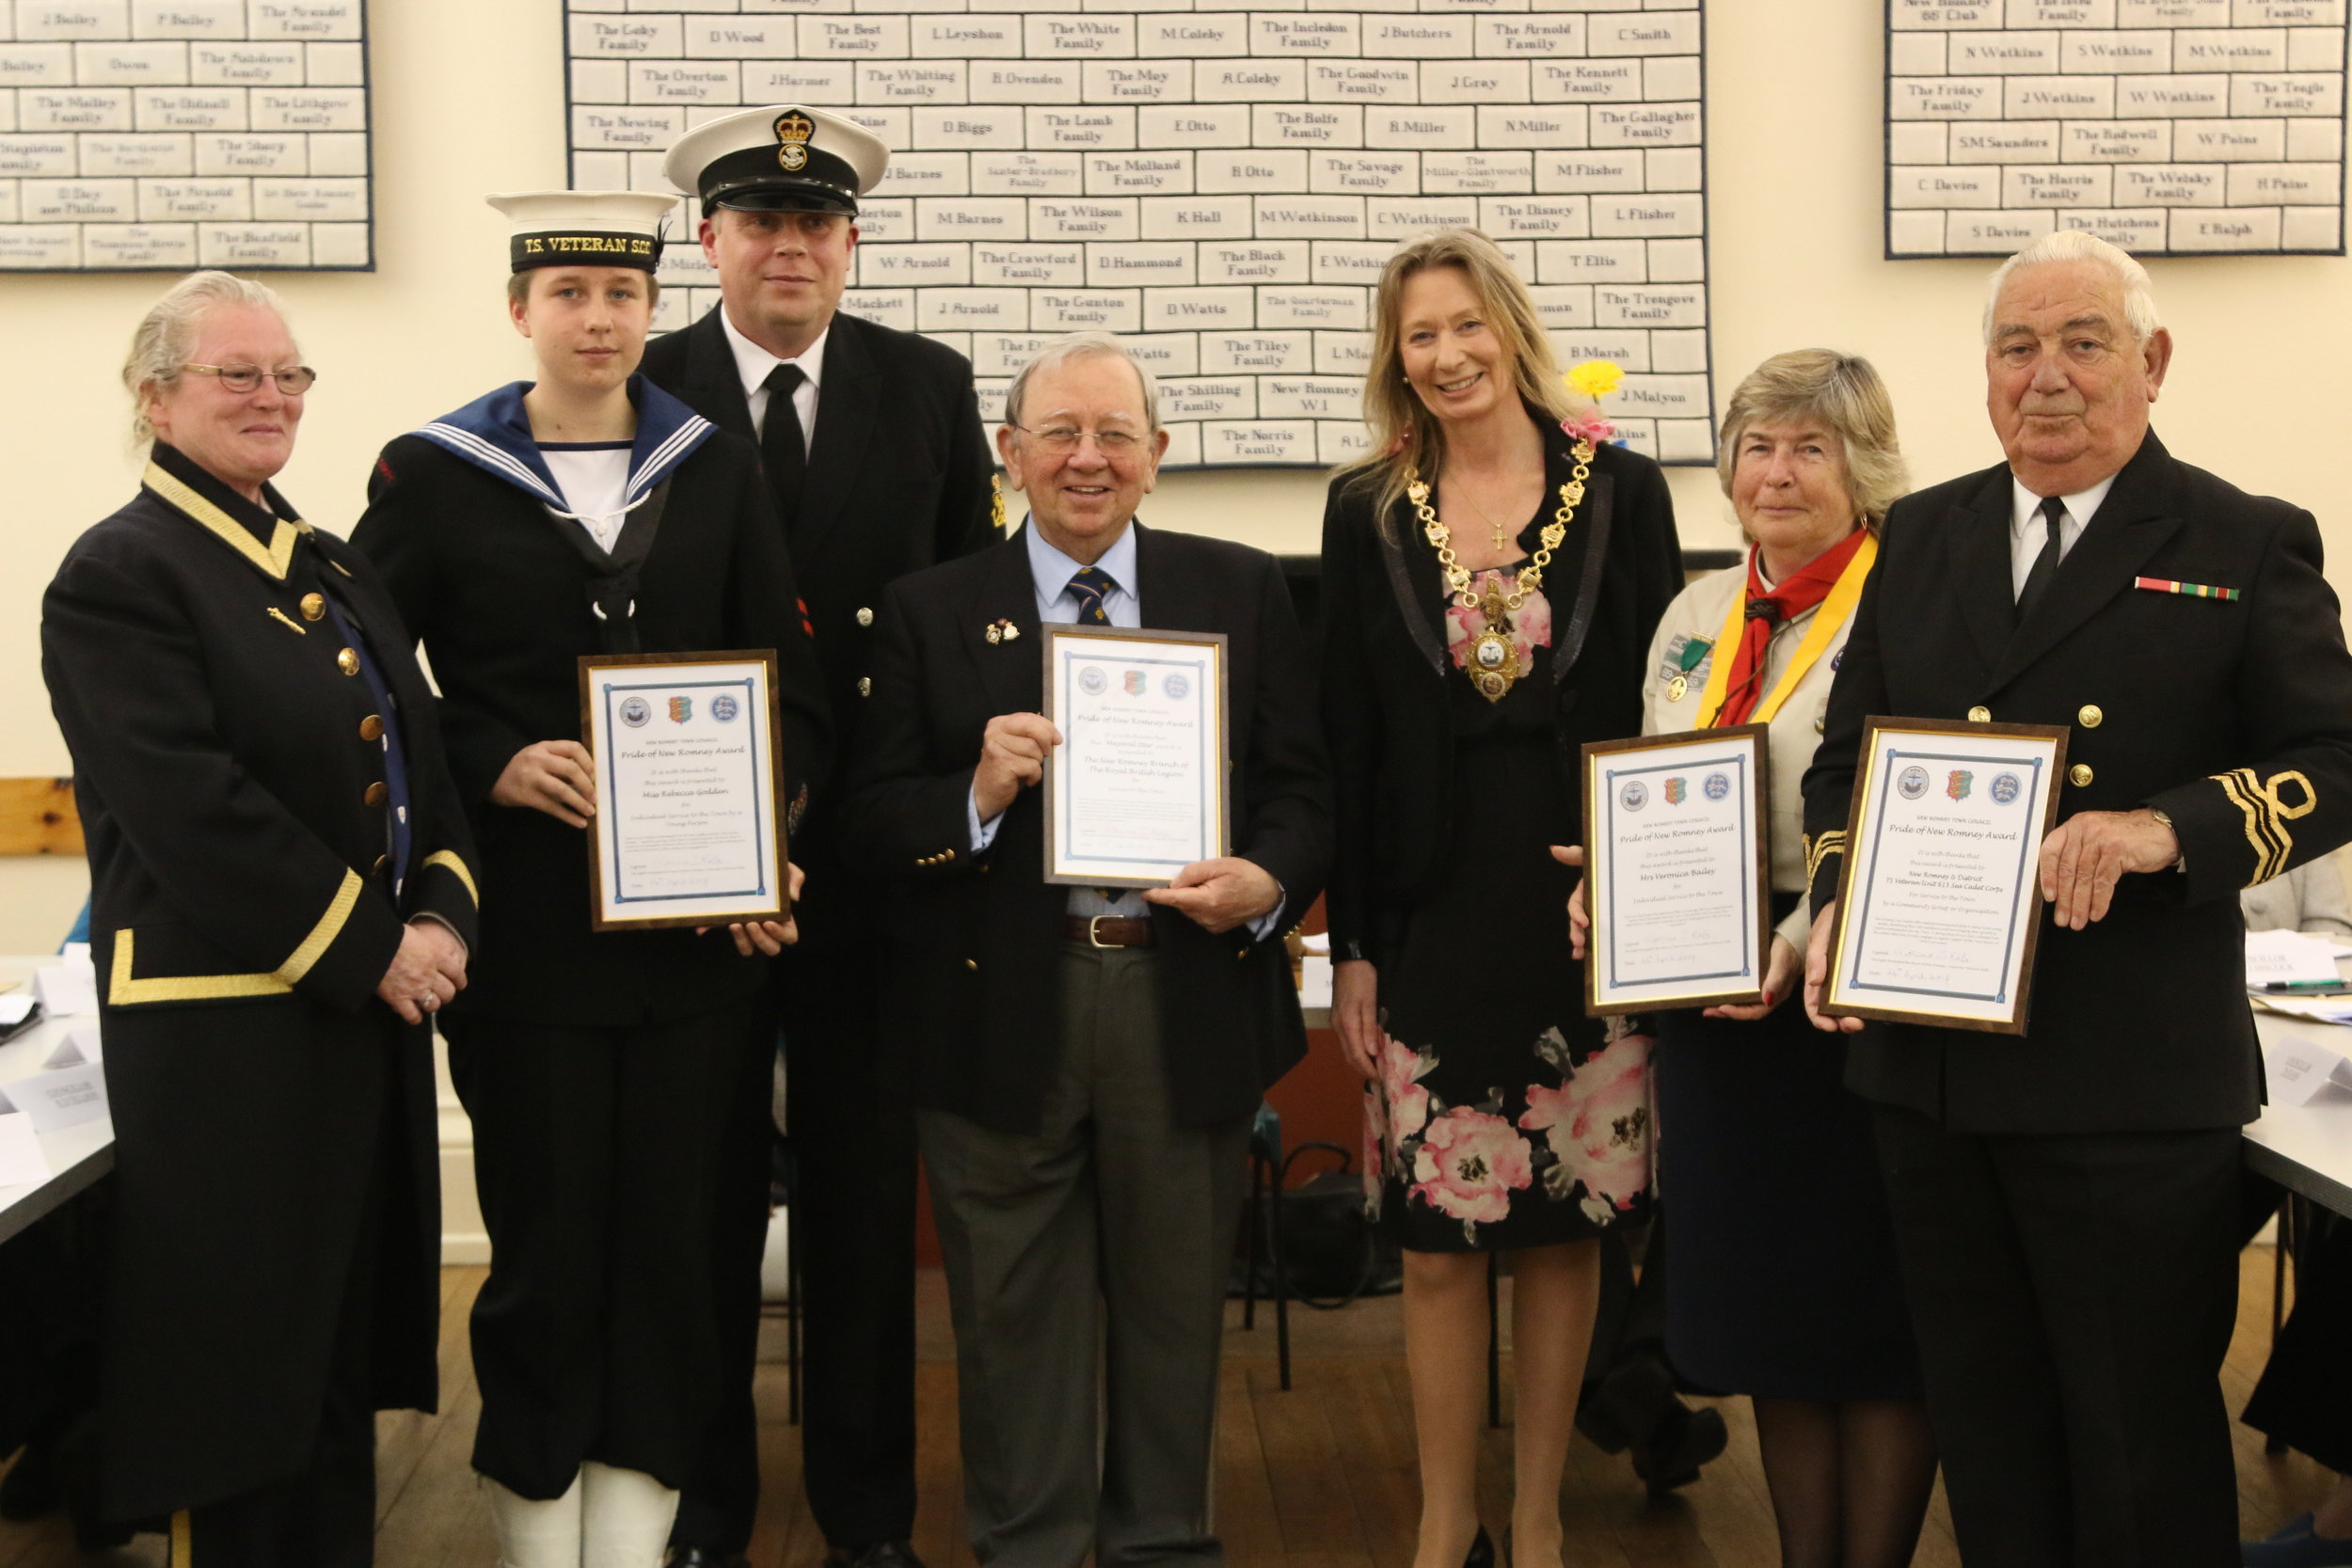 new romney annual meeting and pride of new romney awards 2017